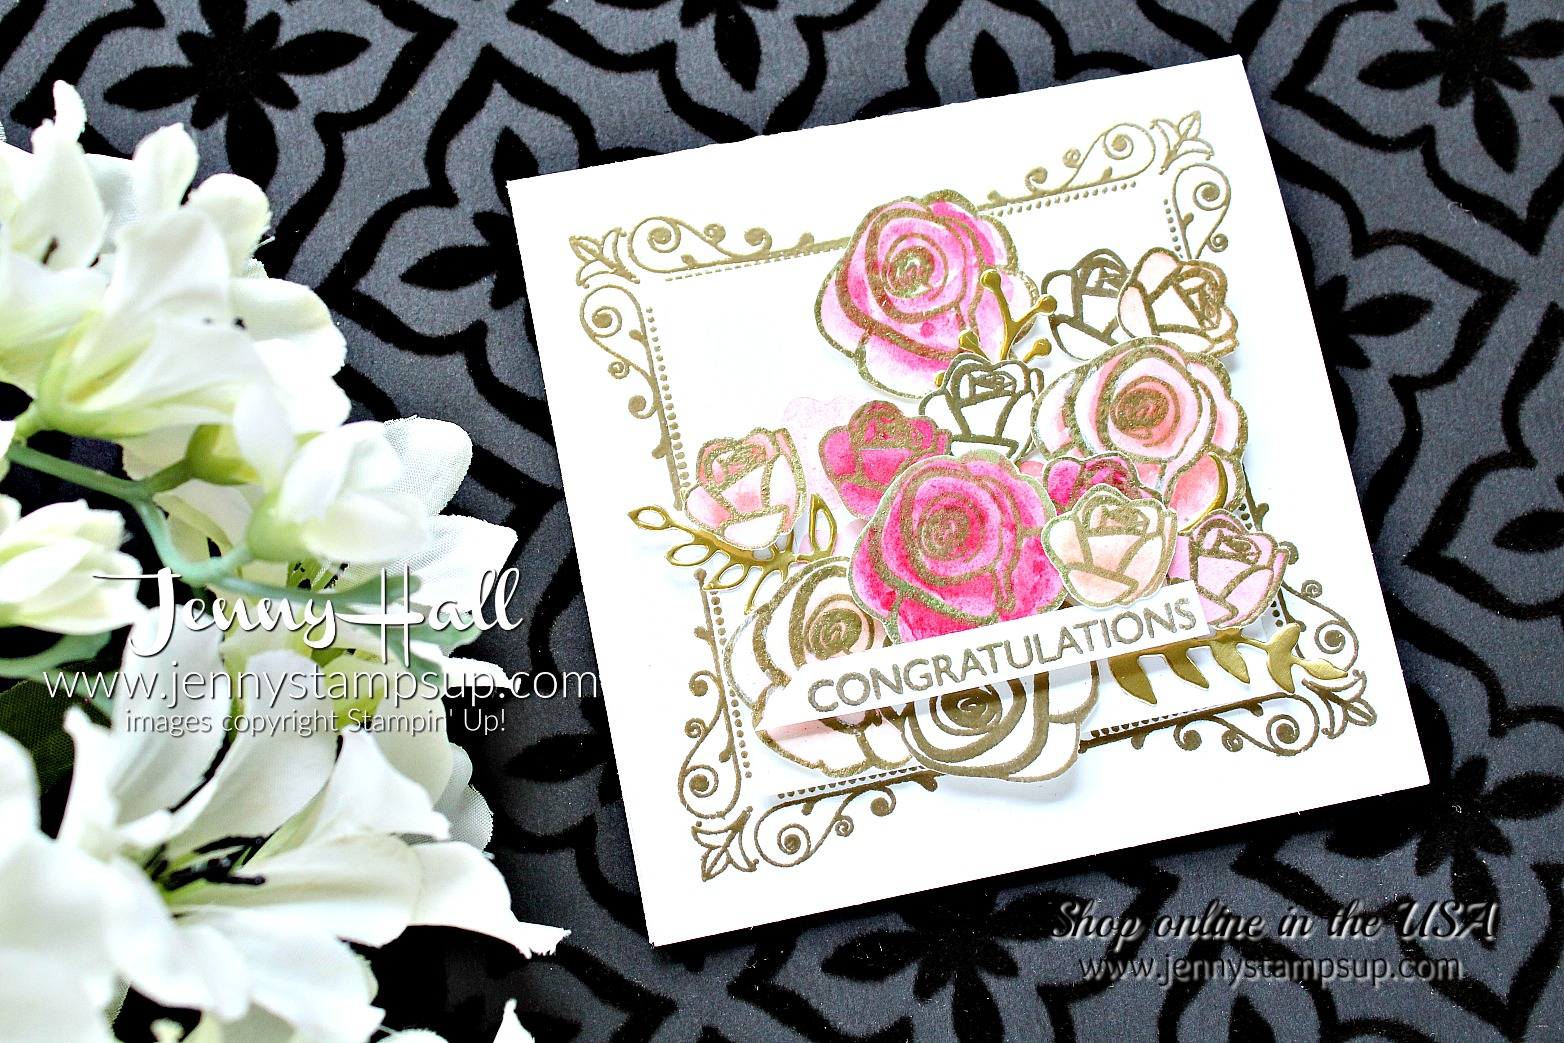 A Dozen Roses card by Jenny Hall at www.jennystampsup.com for #cardmaking #stampinup #inspiredevents #rosestamp #dozenroses #watercolor #papercraft #jennystampsup #jennyhalldesign #jennyhallstampinup #kidfriendlycraft #stamping #artsandcrafts #painting